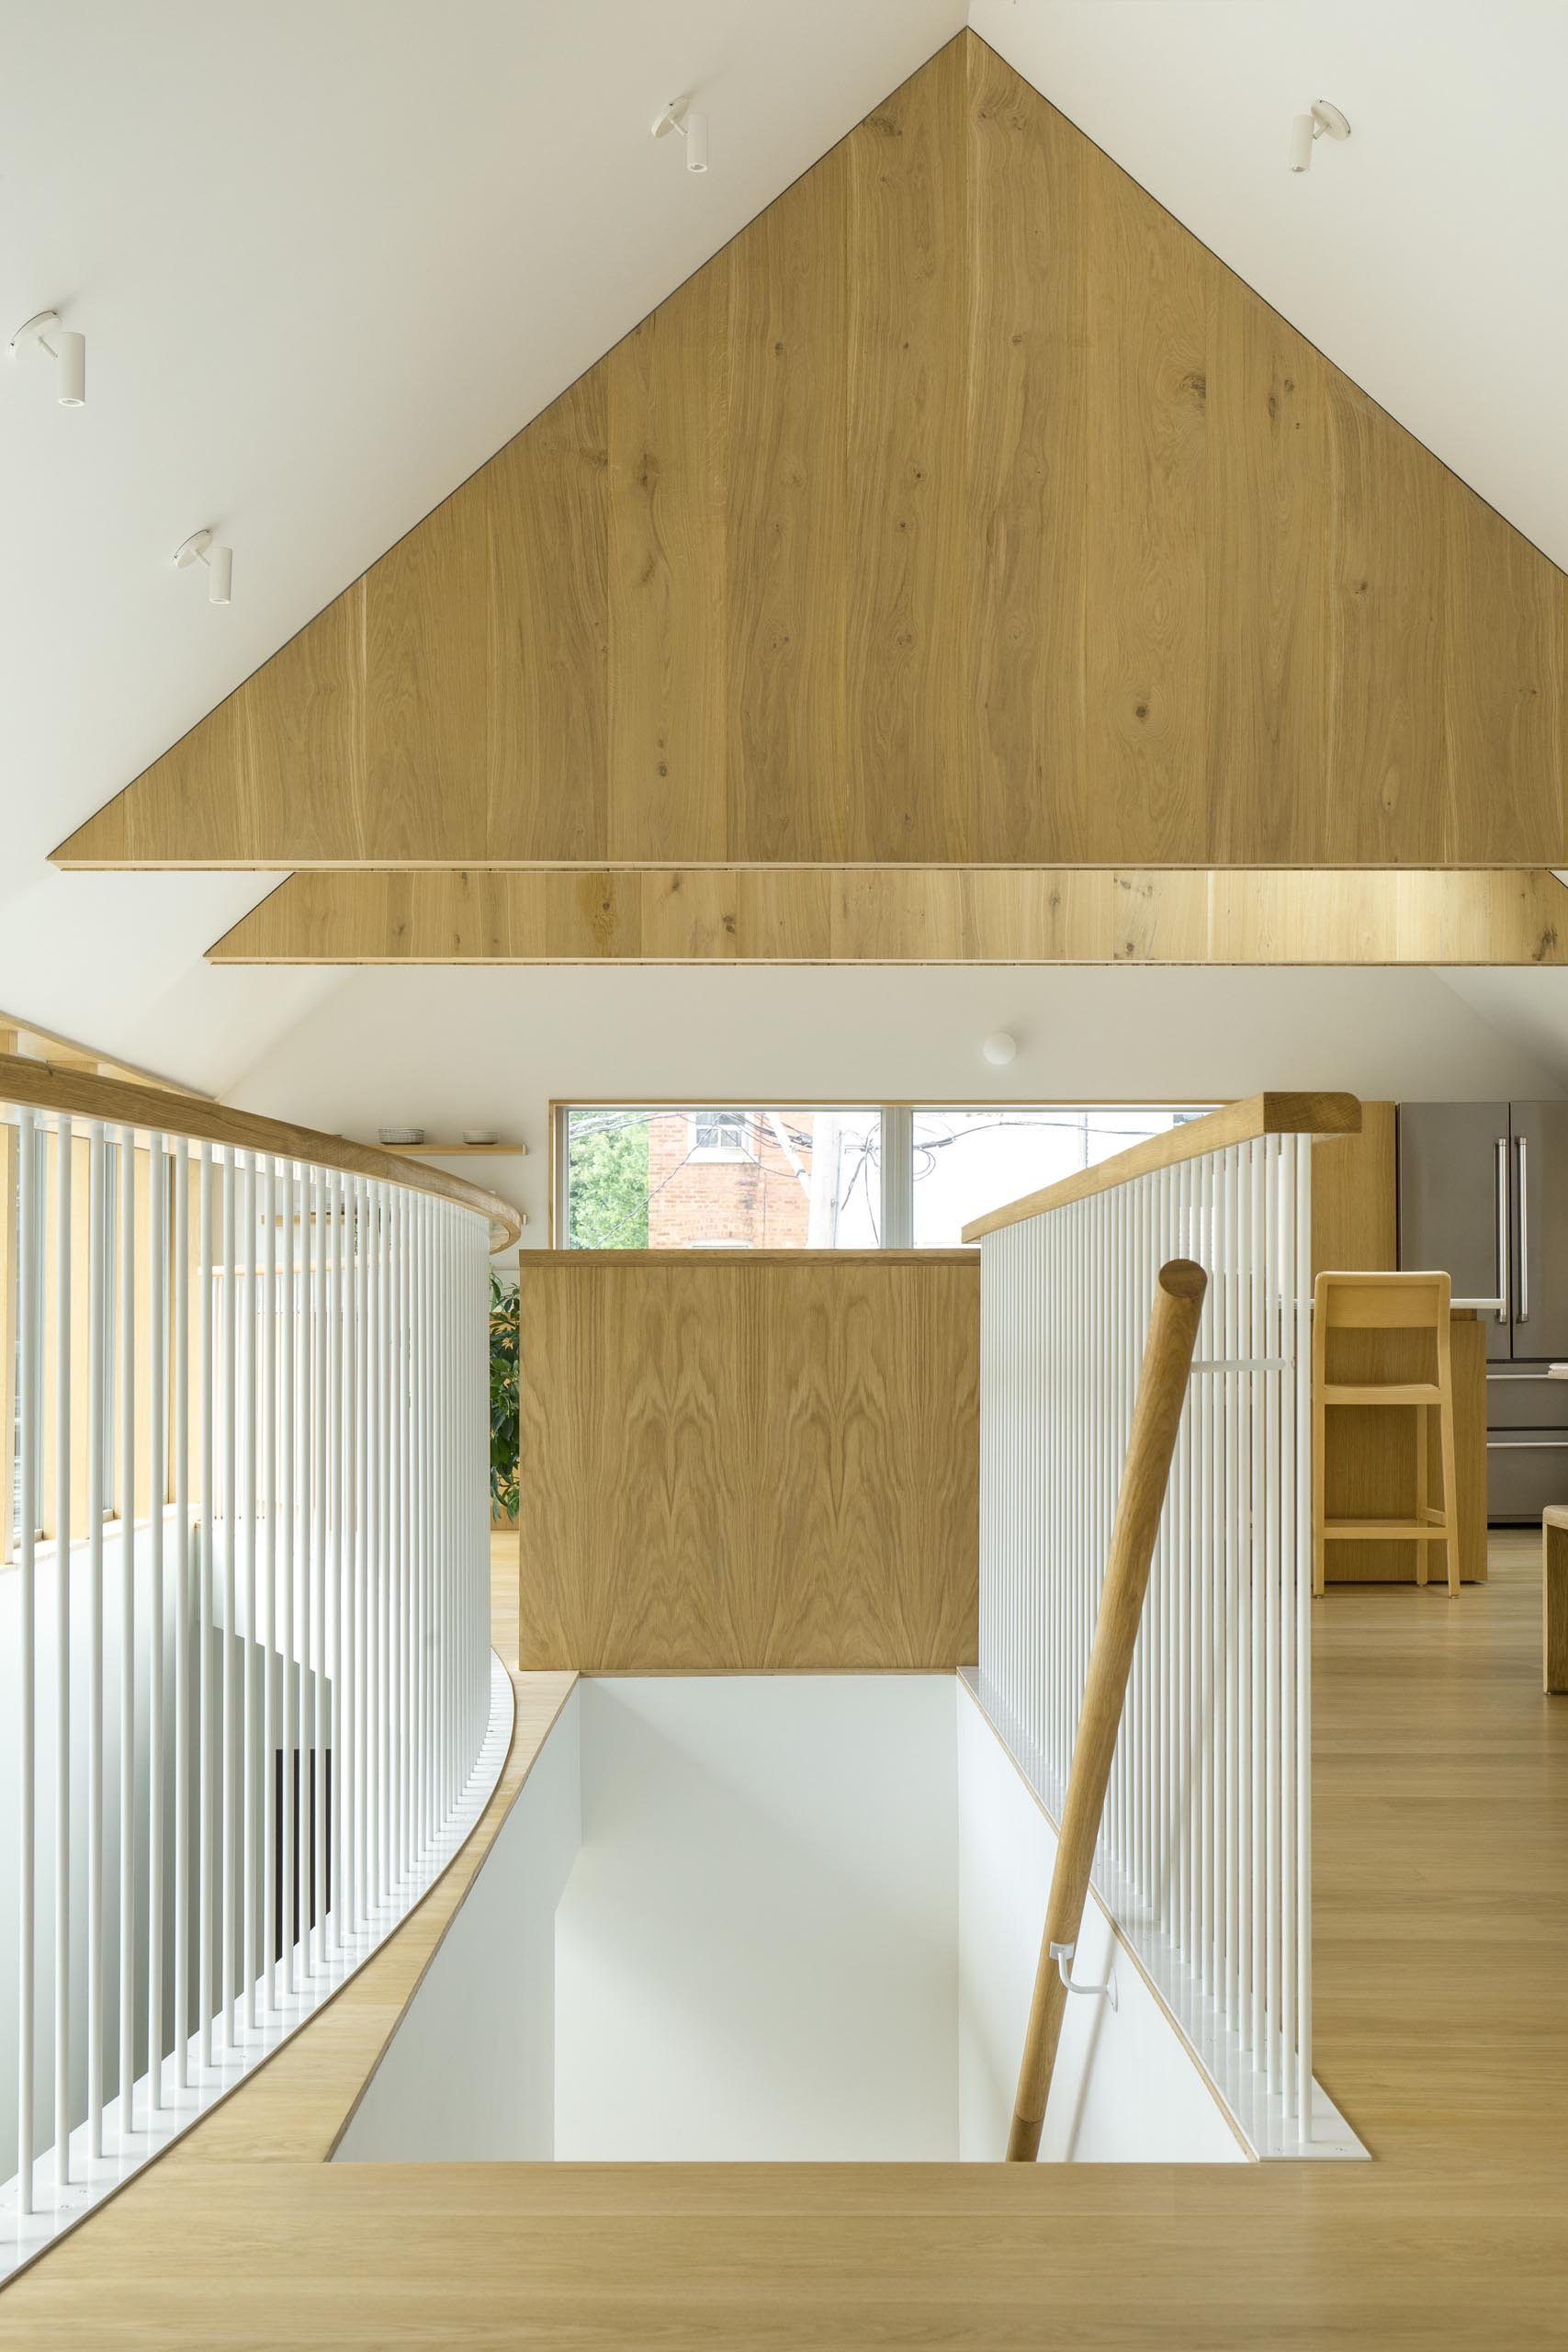 Wood stairs with a matching handrail lead up to the social areas of this modern home.